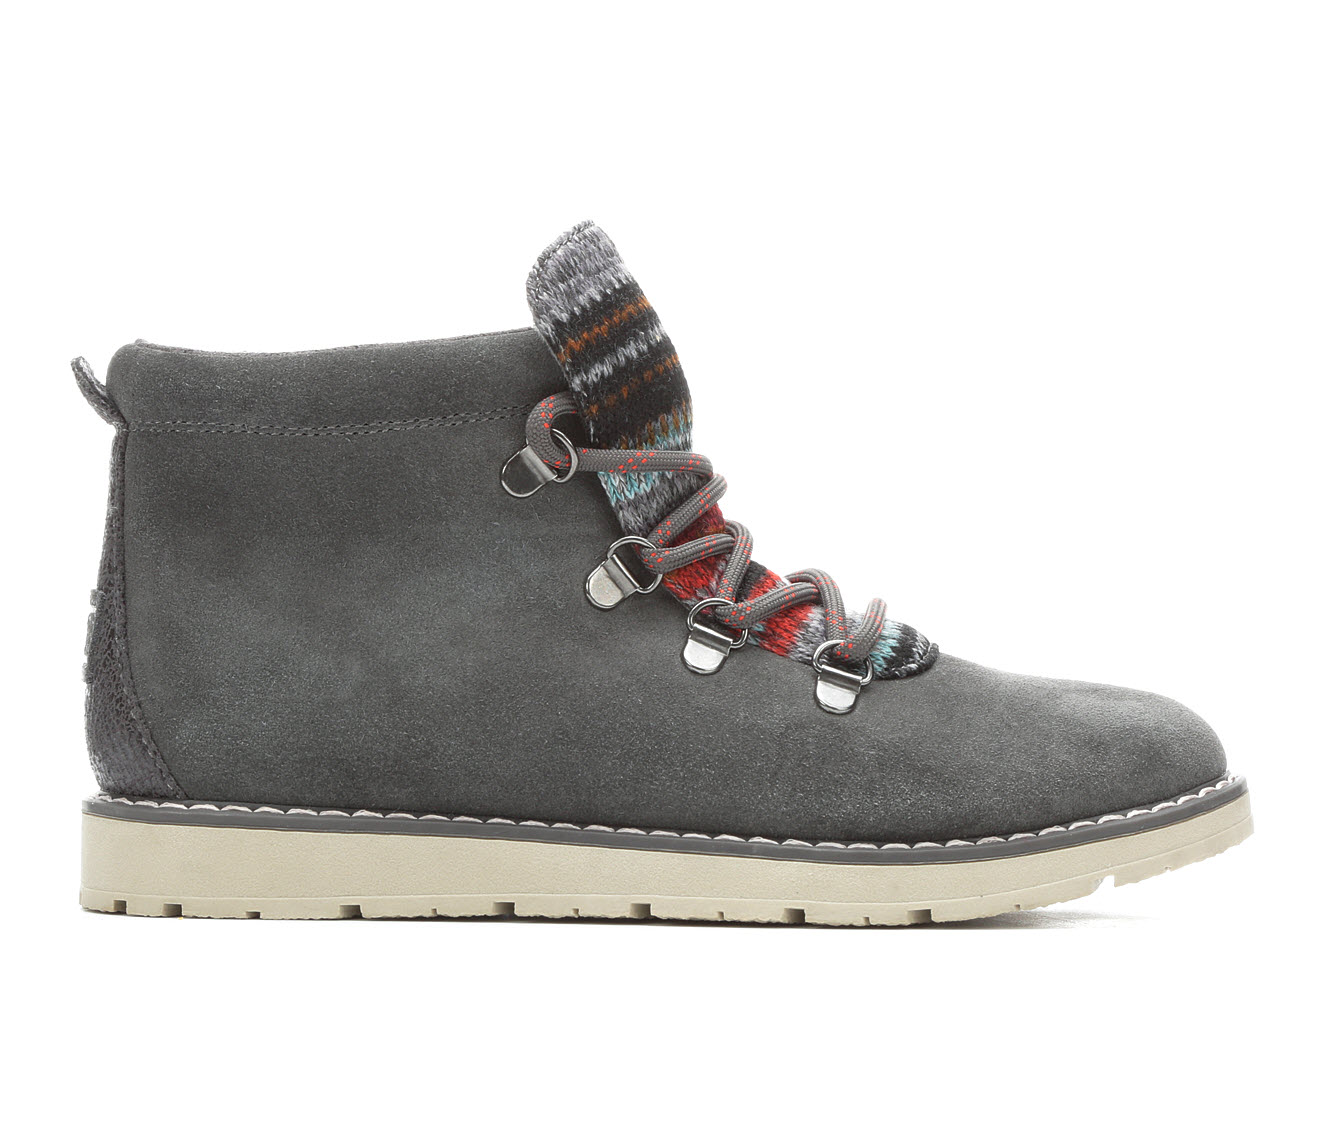 BOBS Alpine S'mores Women's Boots (Gray - Canvas)